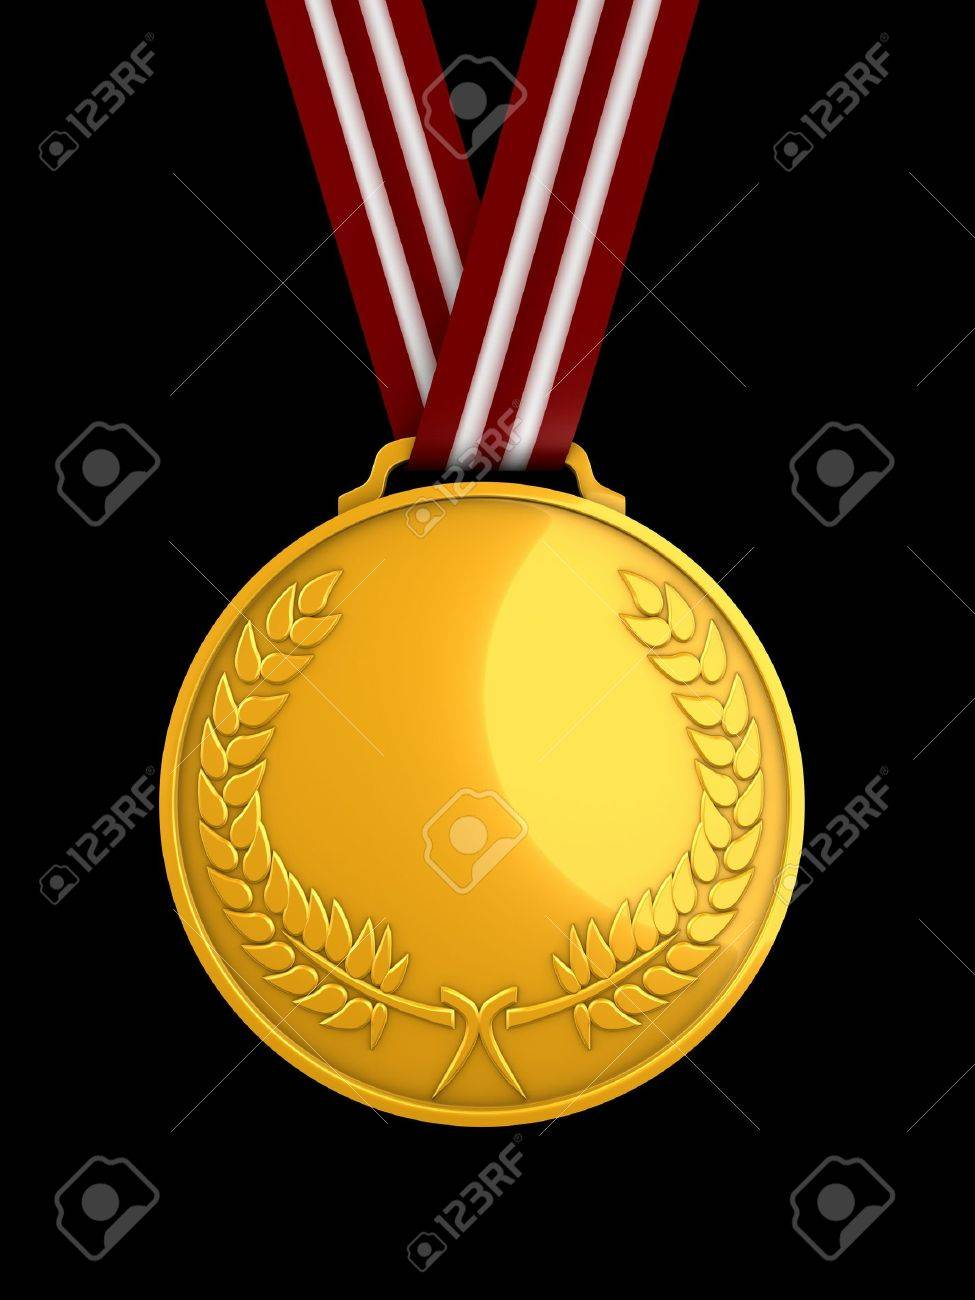 3d image, shiny gold medal Stock Photo - 3508215